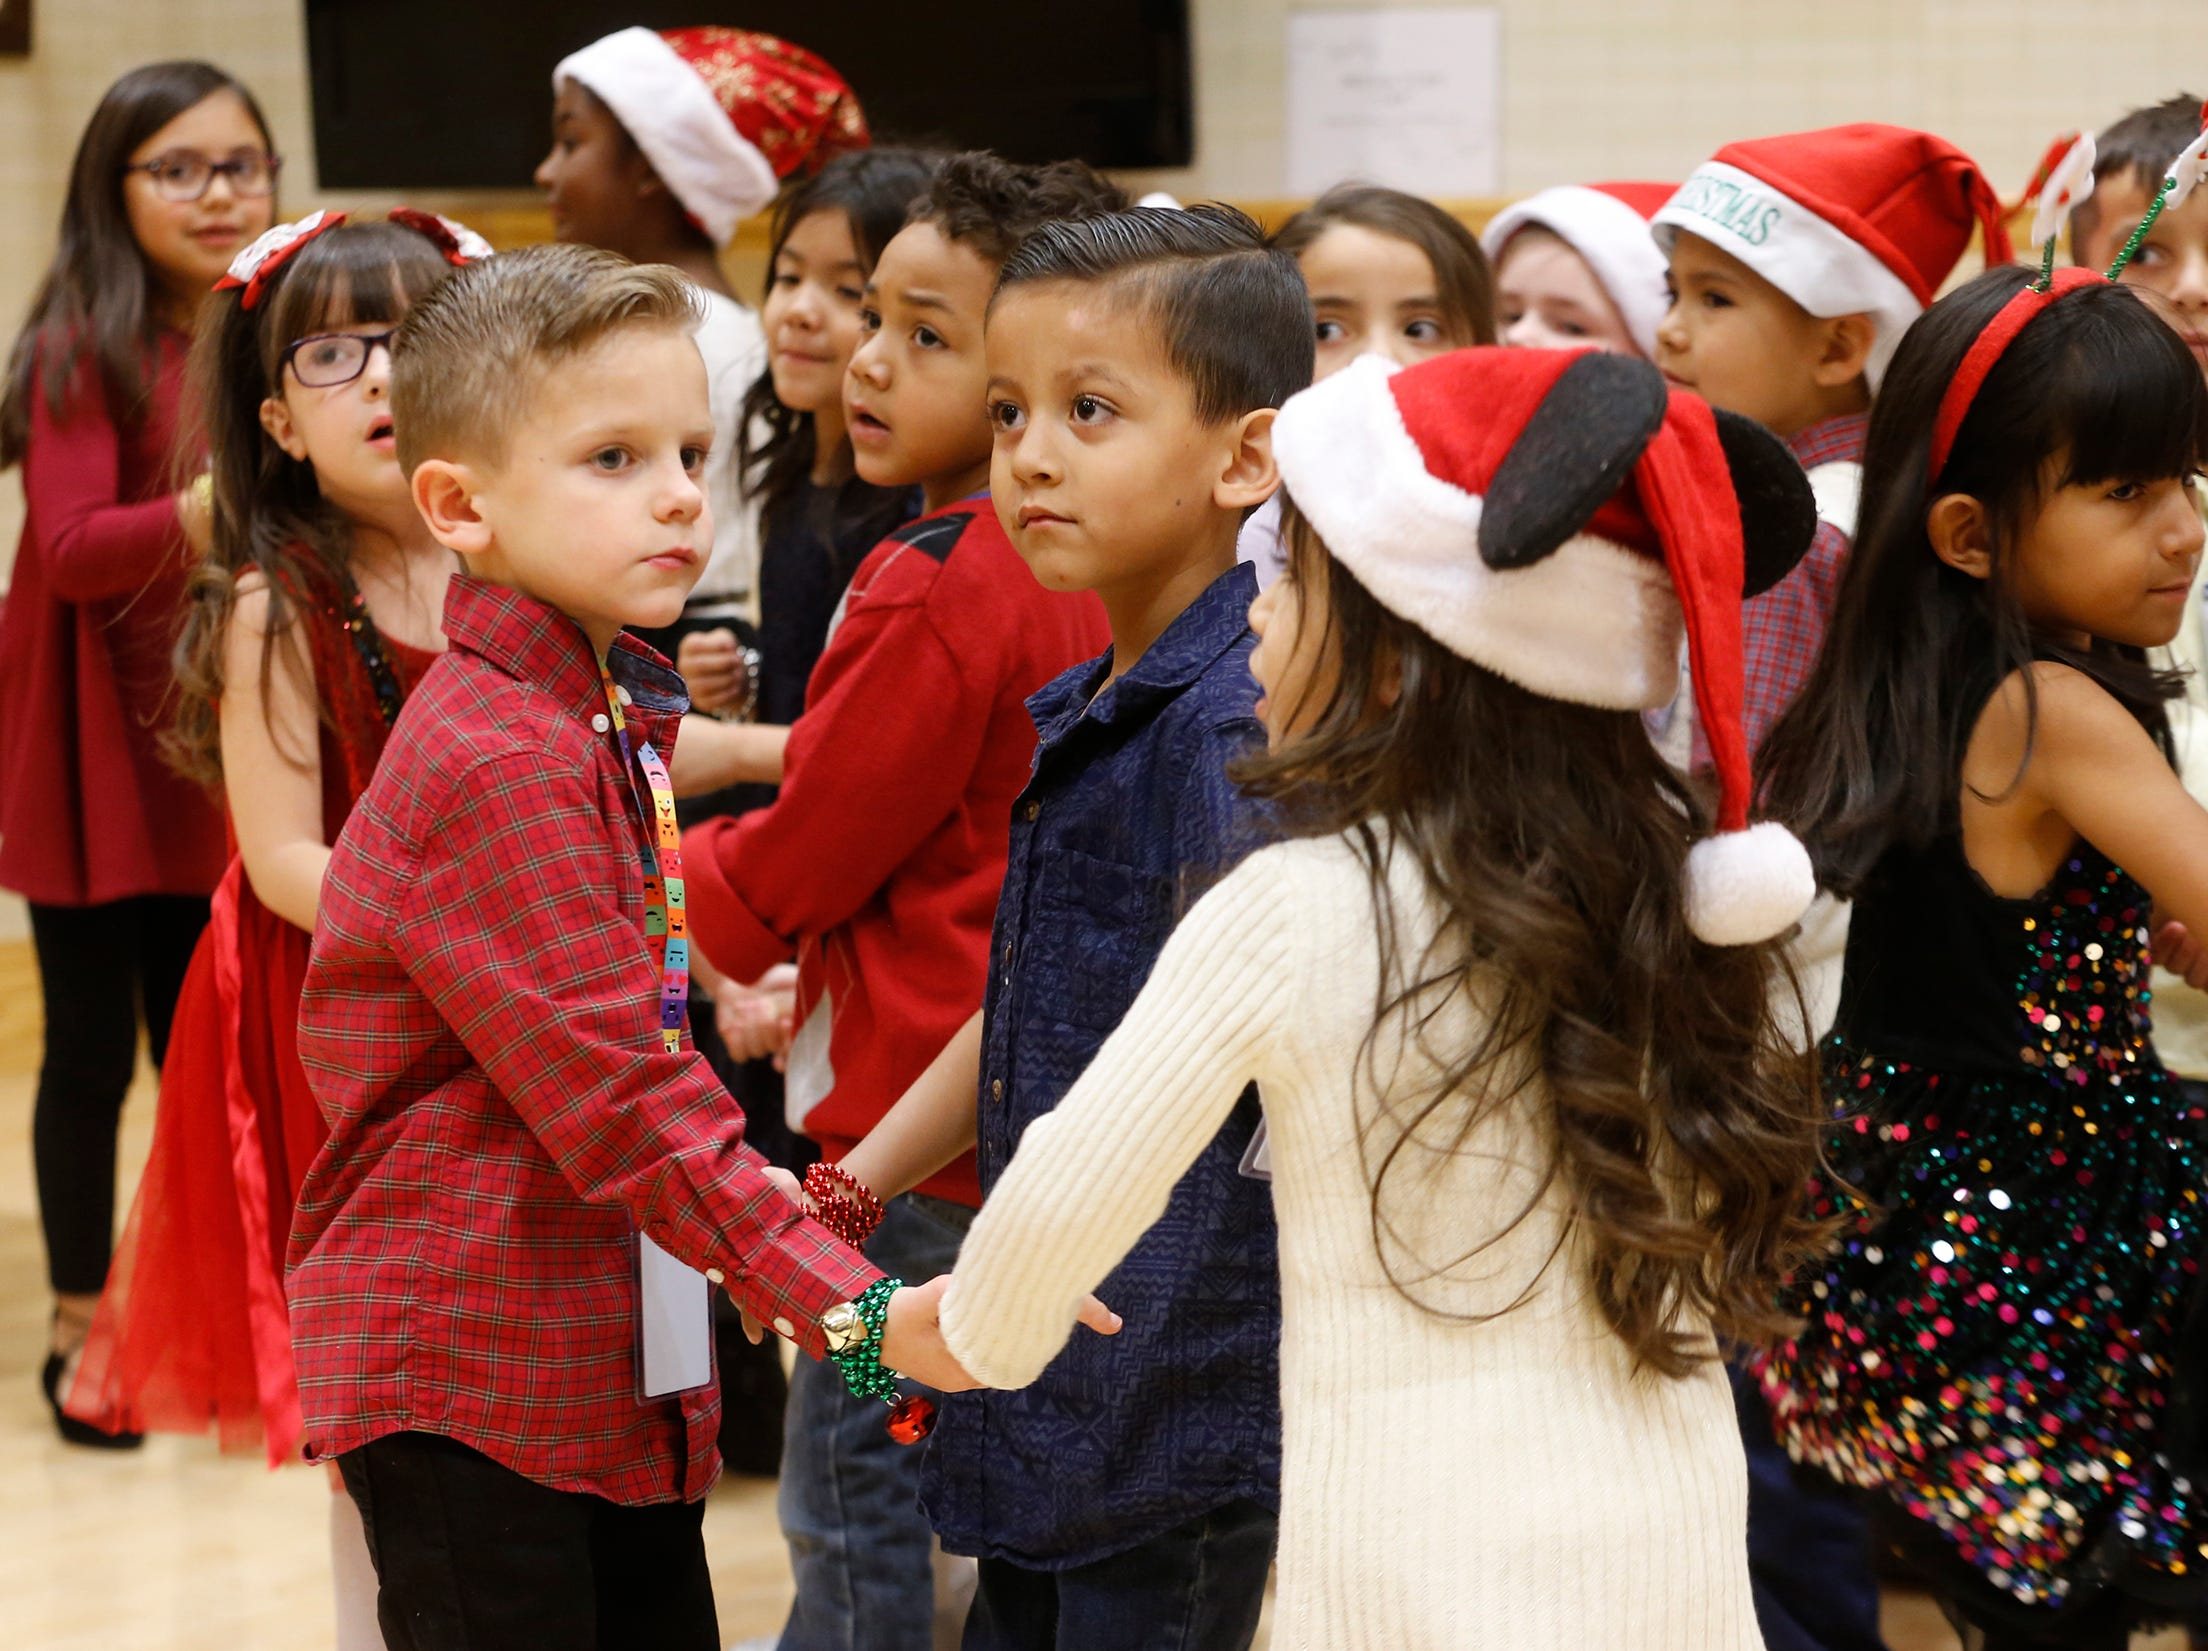 Students from Sgt. Jose F. Carrasco Elementary from SISD, spent their lunch time singing to seniors. The kindergarten students visited three separate dining areas at the Ambrosio Guillen Texas State Veterans Home in northeast El Paso.